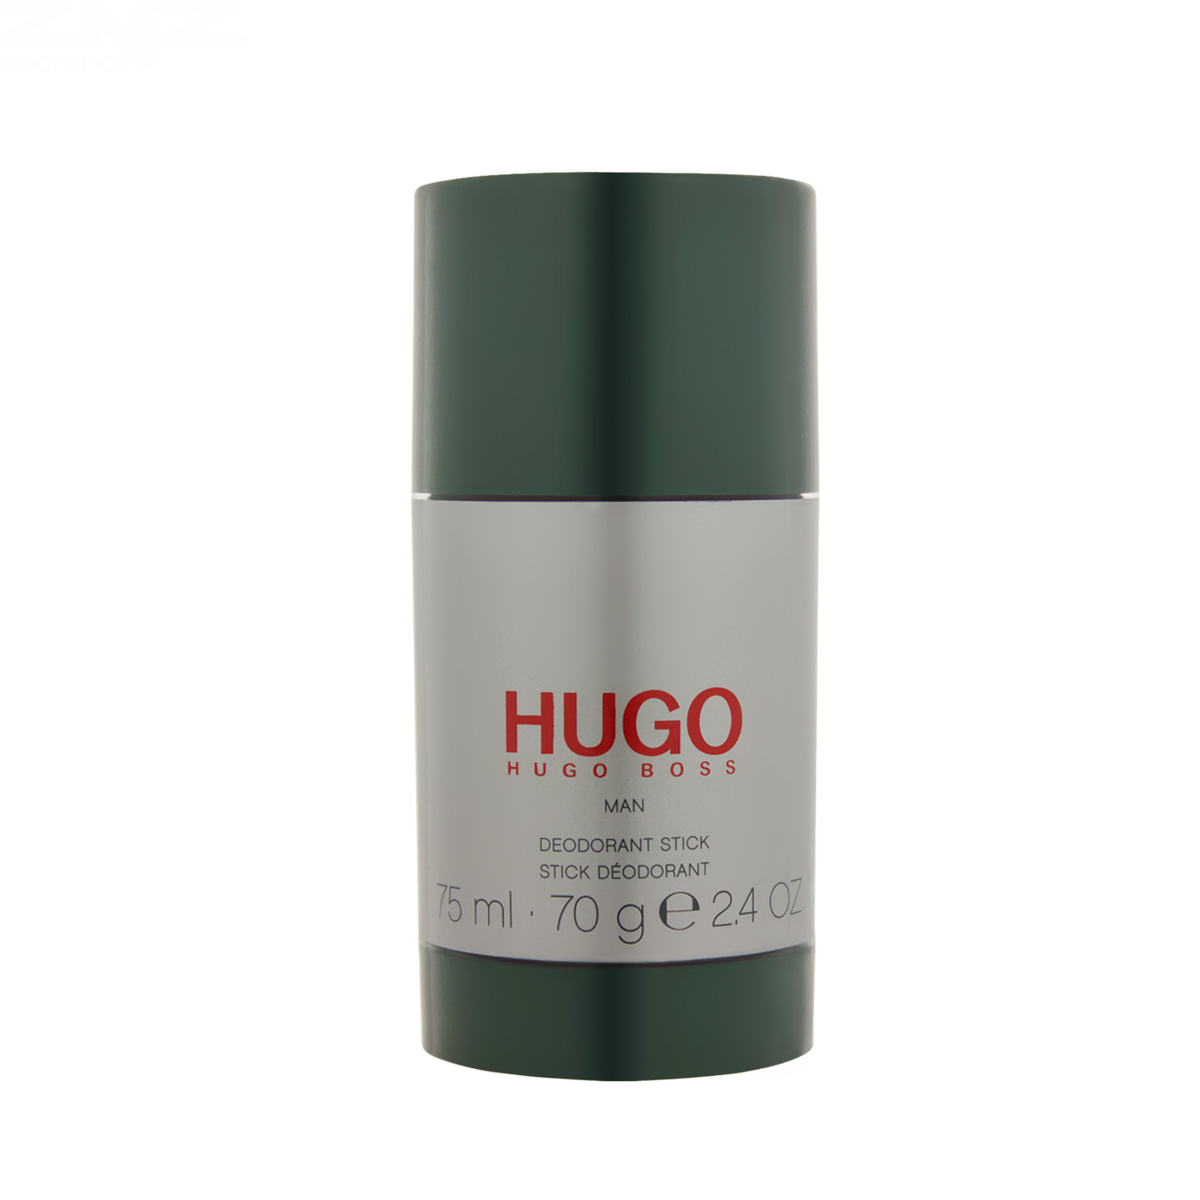 hugo boss deo stick 75 ml preisvergleich. Black Bedroom Furniture Sets. Home Design Ideas